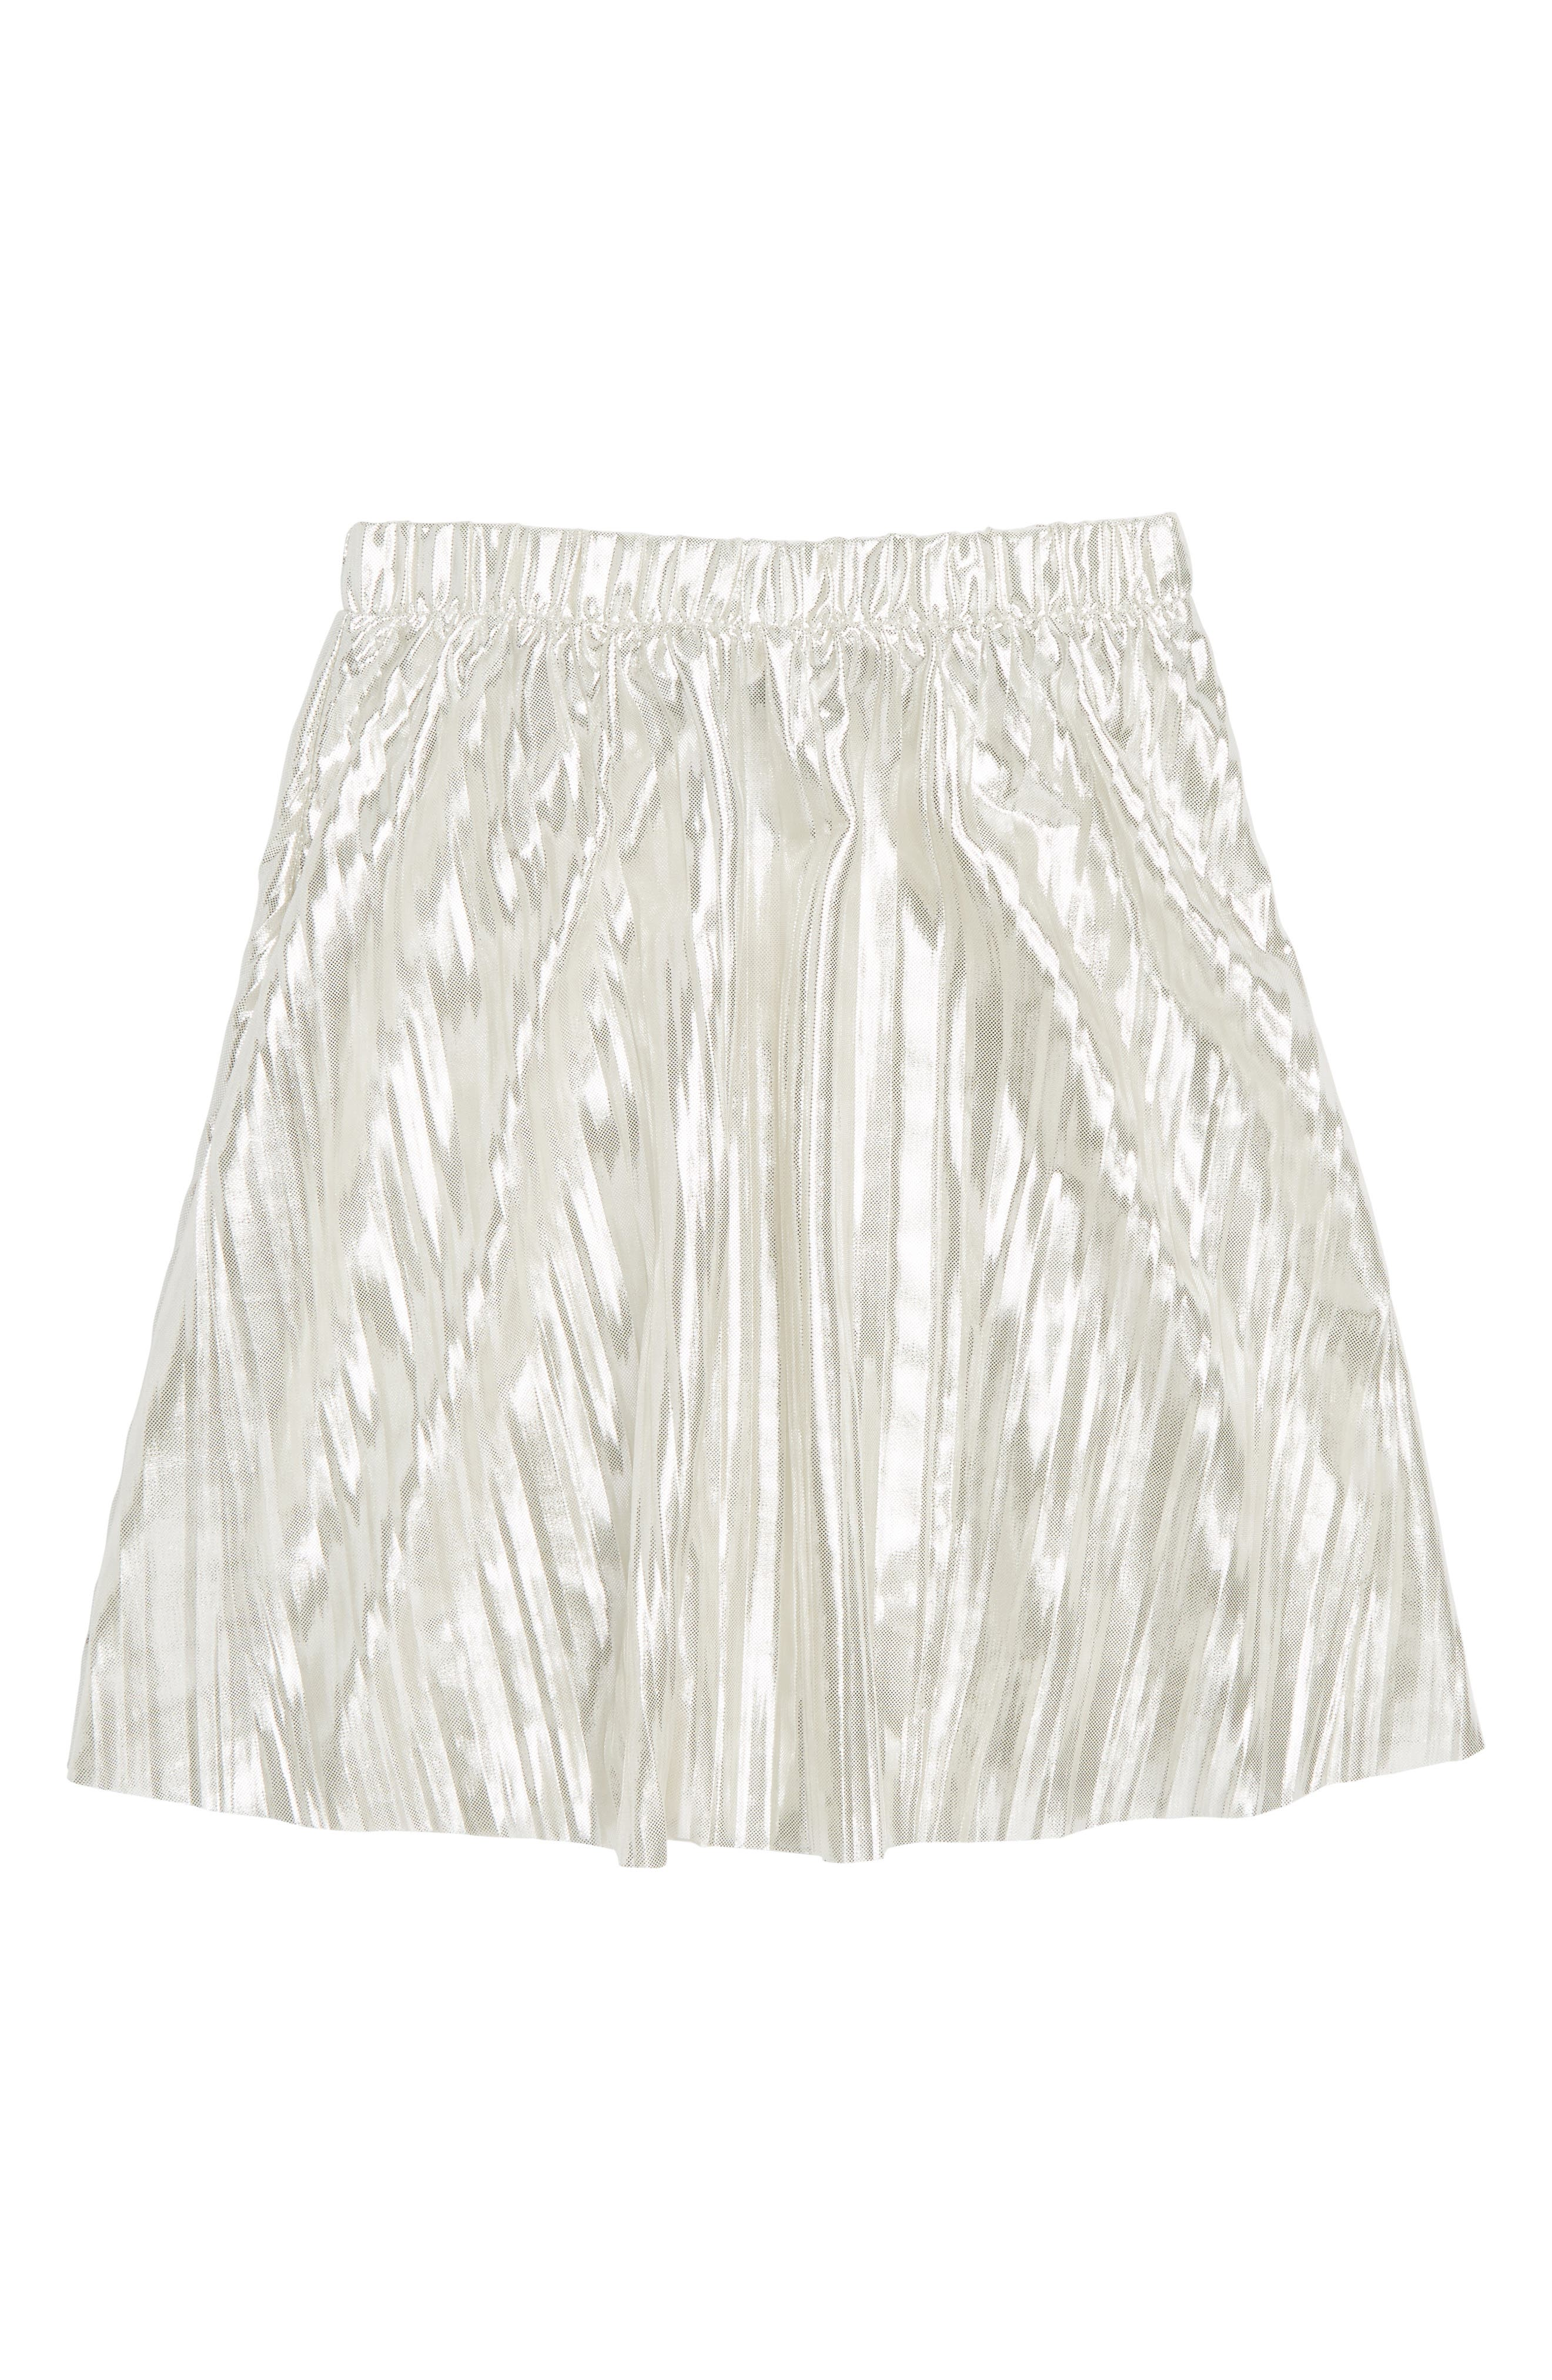 Metallic Micropleated Skirt,                         Main,                         color, 100